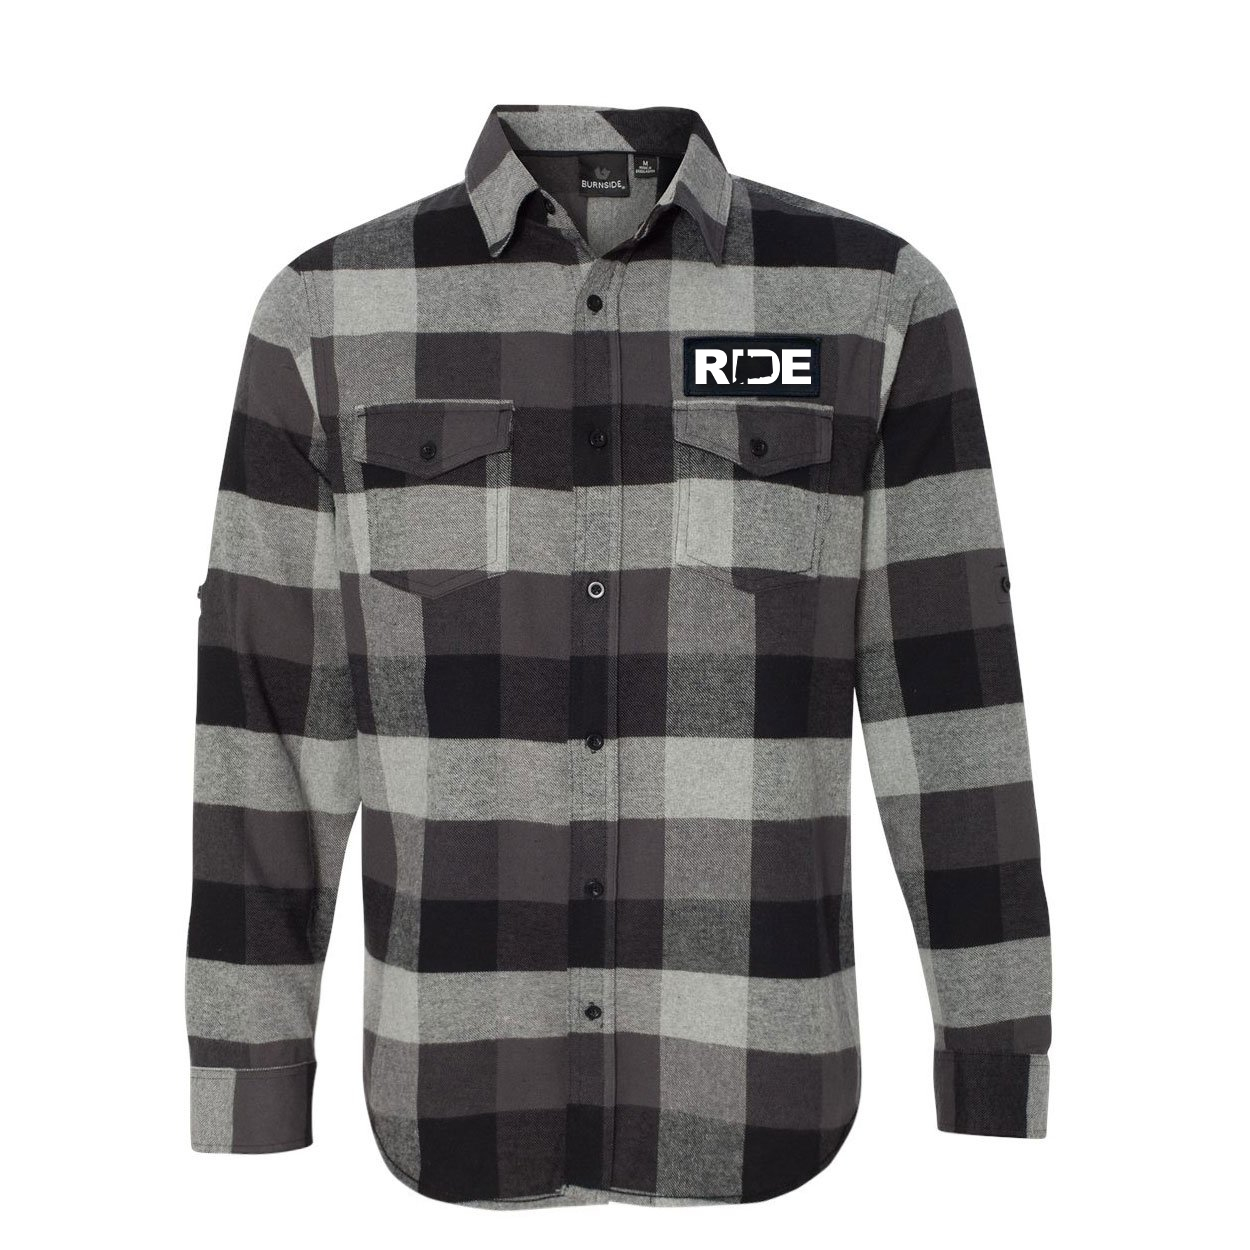 Ride Connecticut Classic Unisex Long Sleeve Woven Patch Flannel Shirt Black/Gray (White Logo)